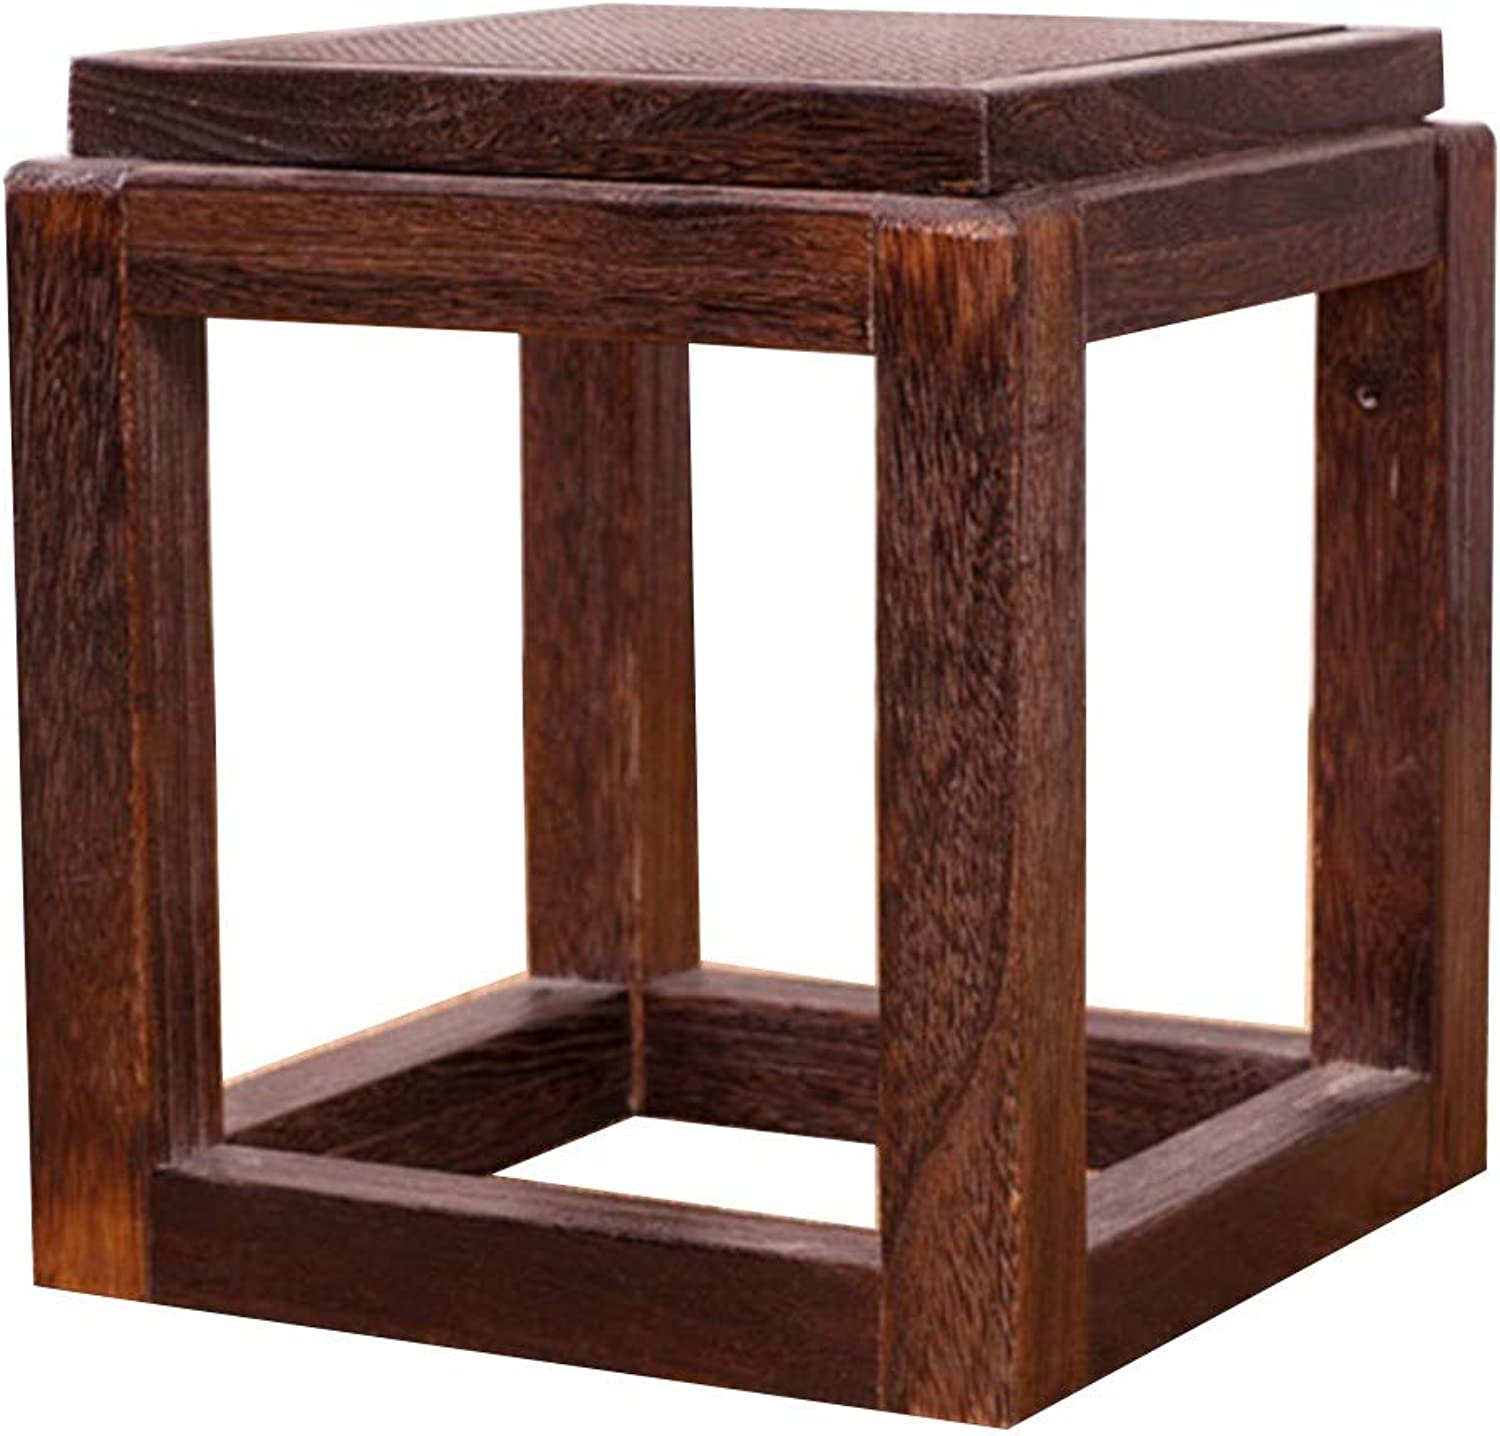 LSXIAO Cushions and footrests Small Stool Solid Wood Bracket Structure Indoor Change shoes Classical (color   Brown, Size   30X30X32CM)